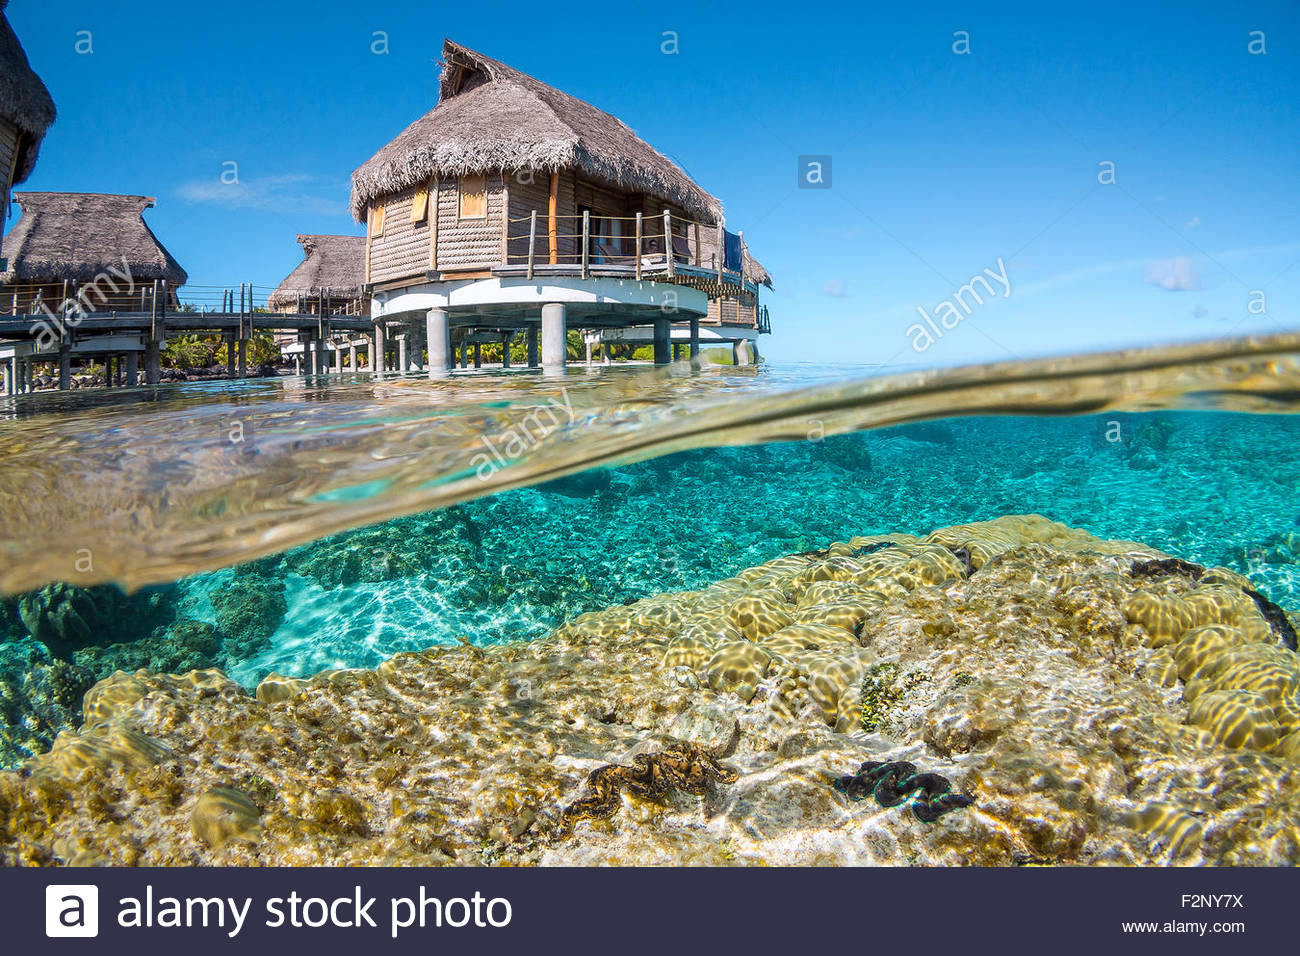 French Polynesia : corals and maxima clams in the lagoon, just below Tikehau Pearl Beach water bungalows Stock Photo